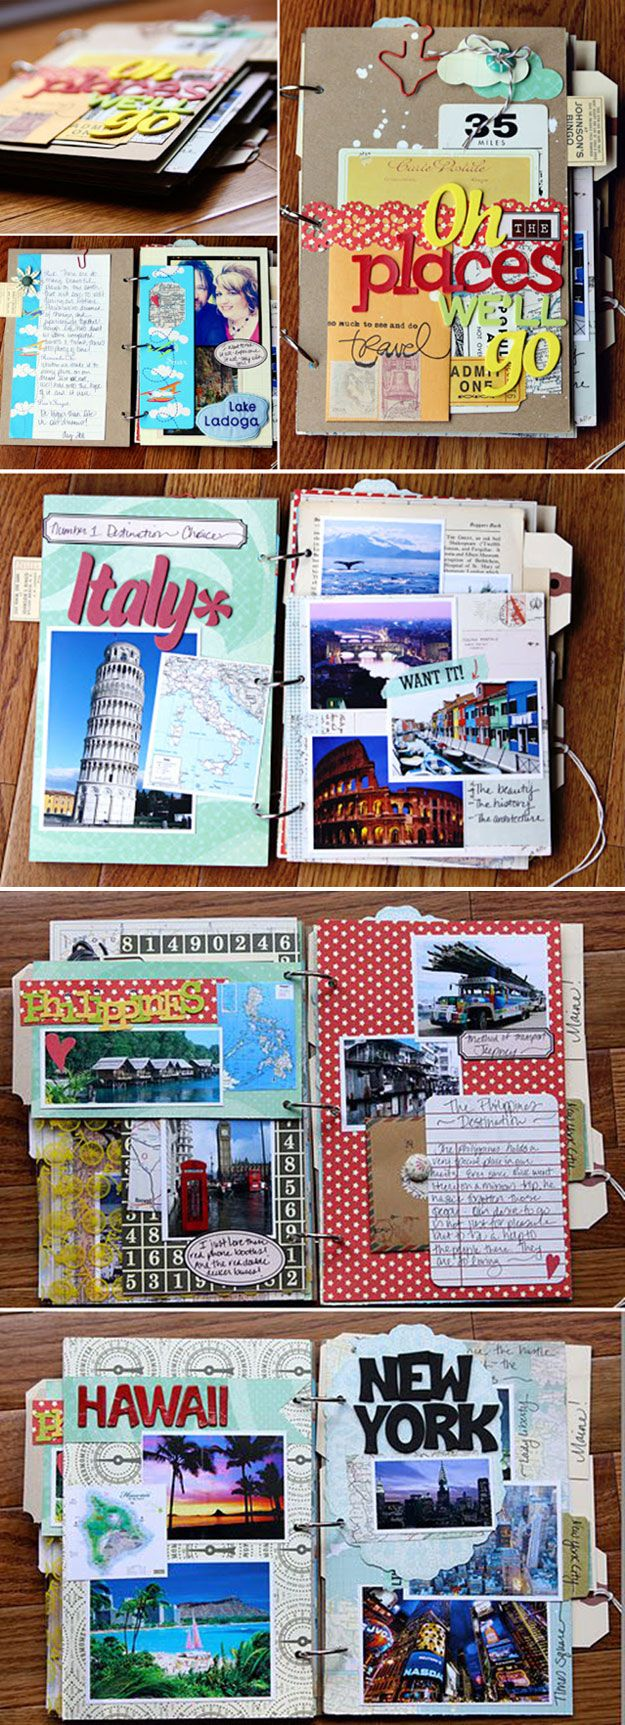 Scrapbook ideas newspaper articles - 33 Creative Scrapbook Ideas Every Crafter Should Know